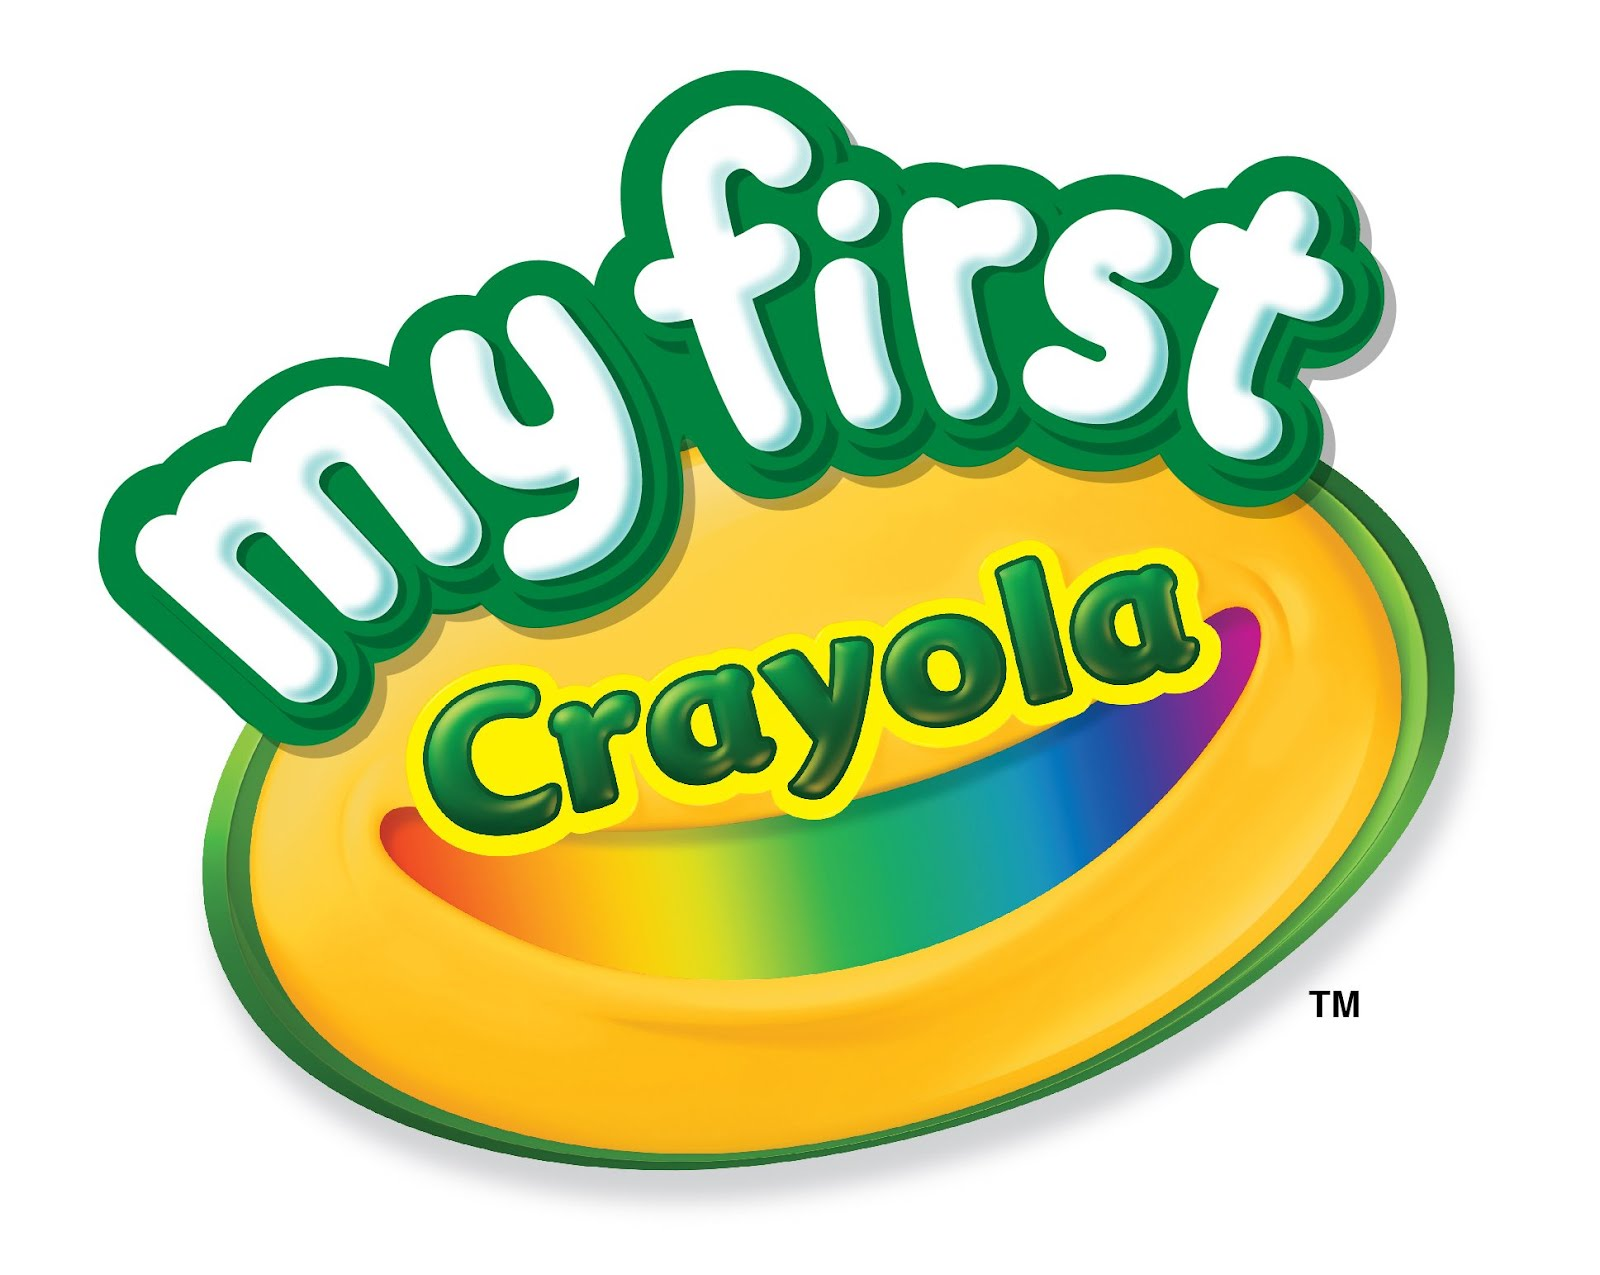 logo - Crayola Sign